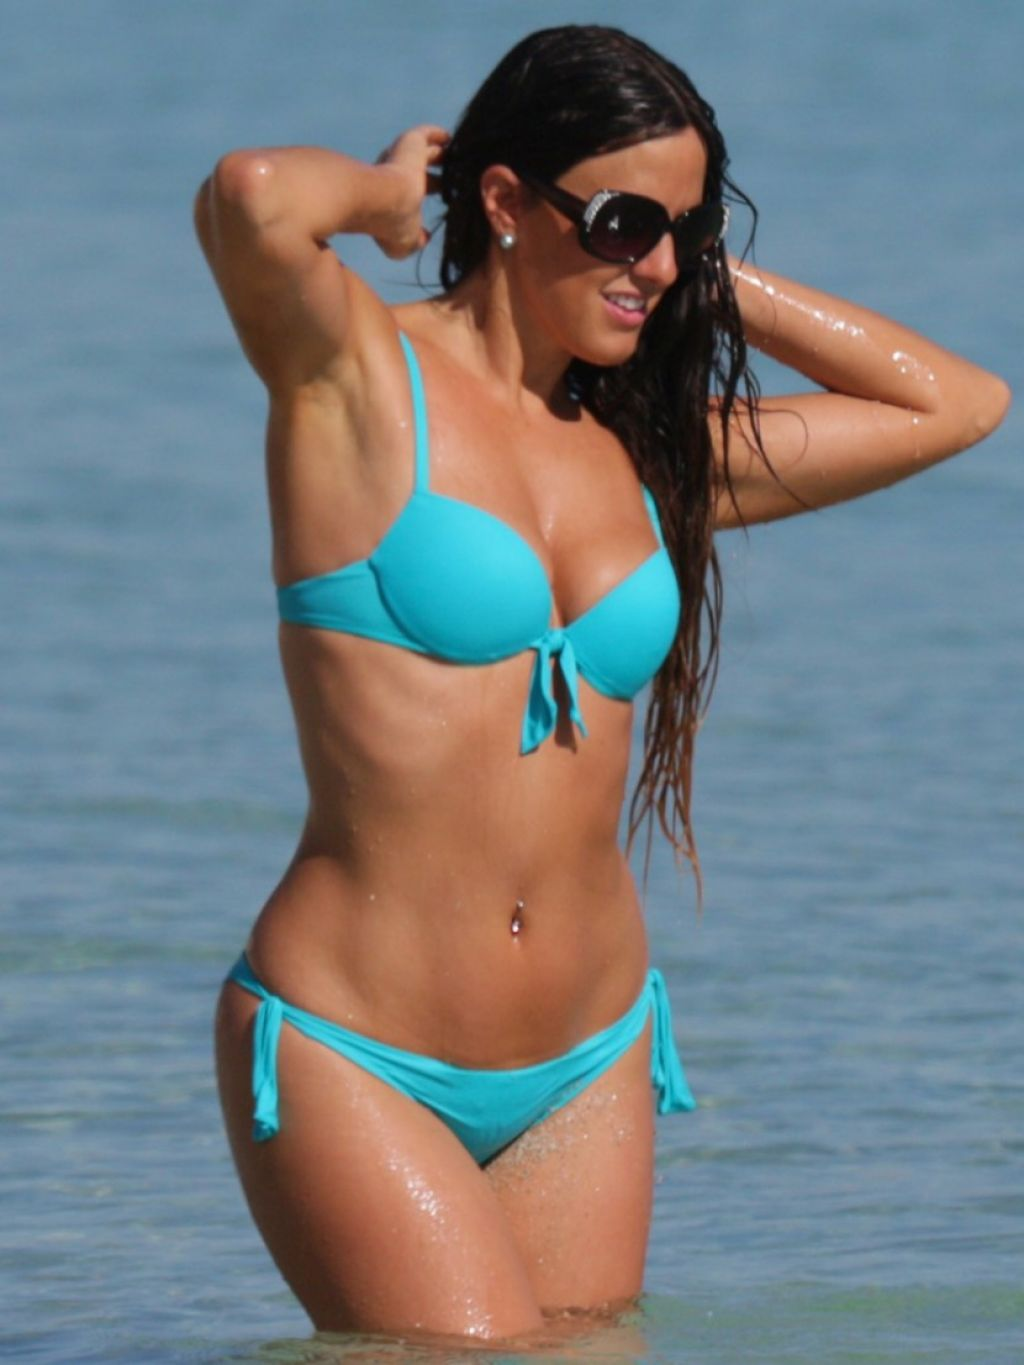 Claudia Romani Wearing a Bikini in Miami - December 2014